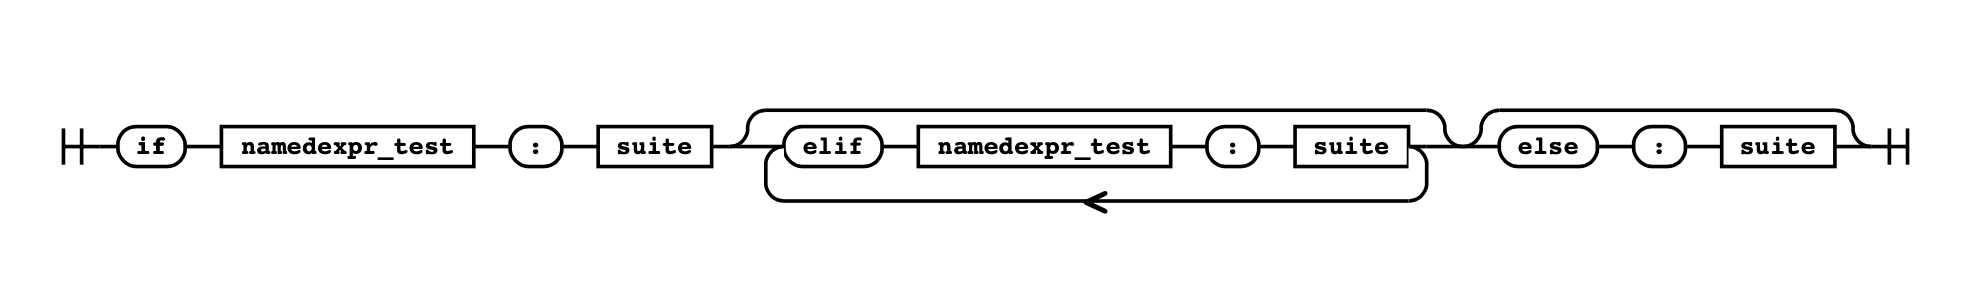 if_stmt_with_namedexpr_test